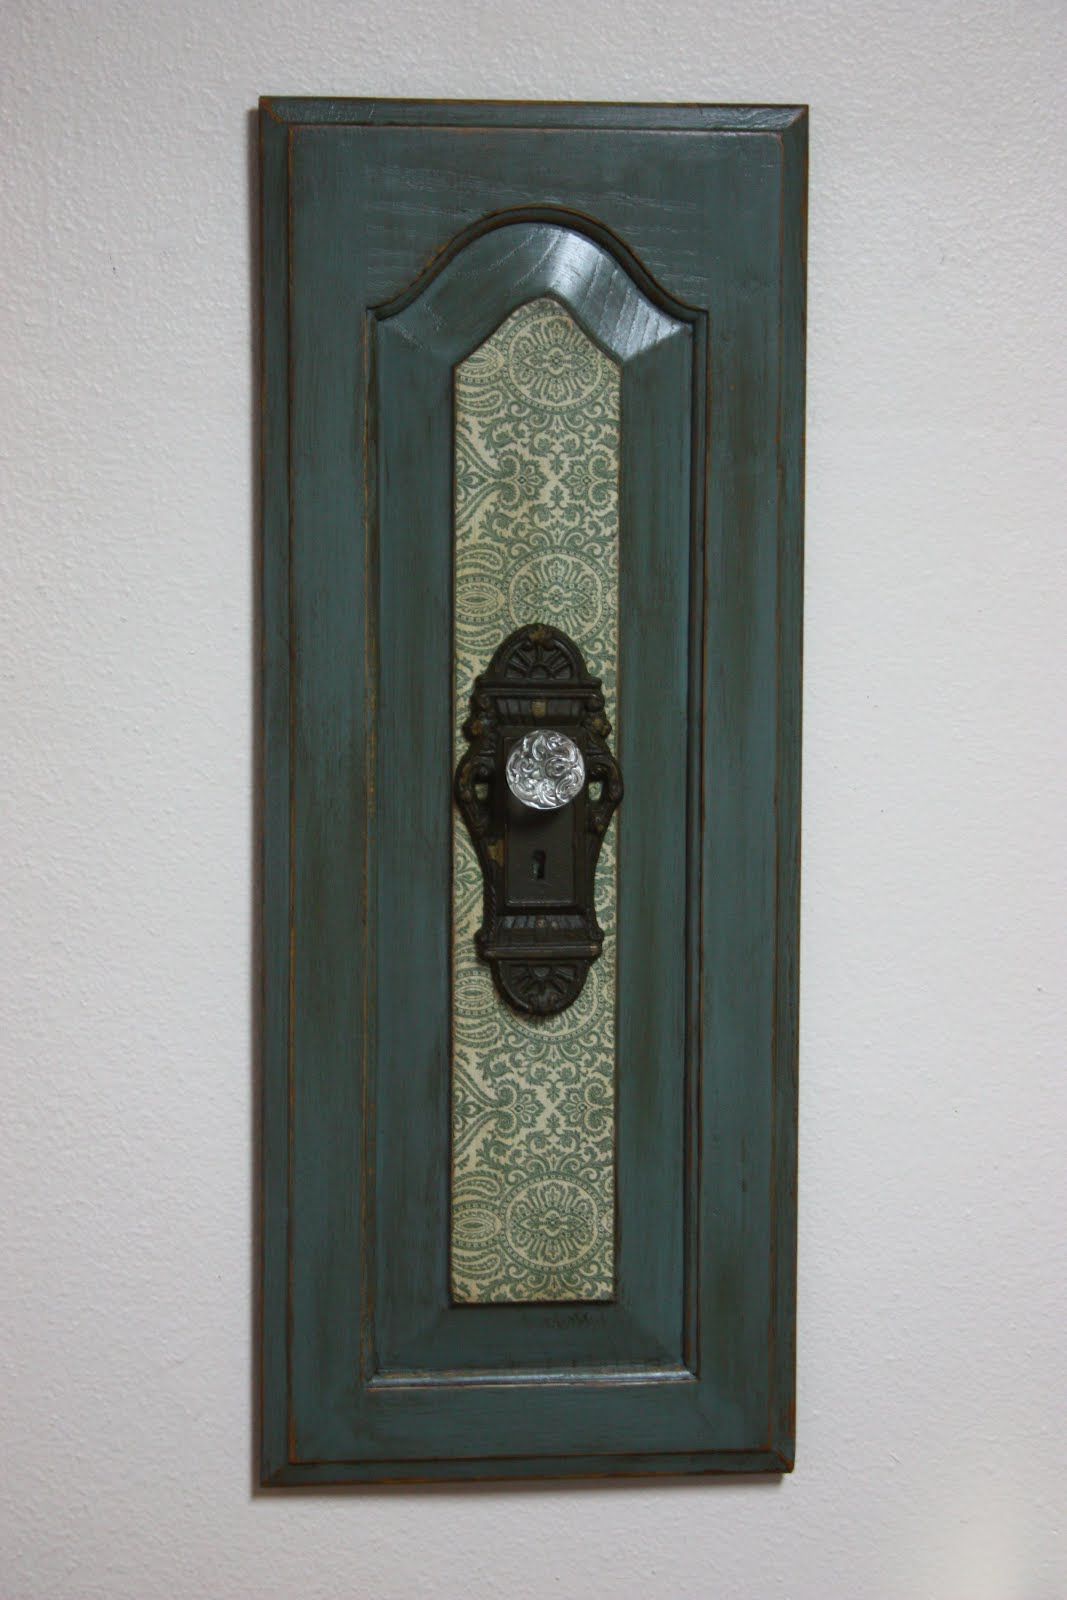 At Home: Green Wall Hanging with Antique Door Knob